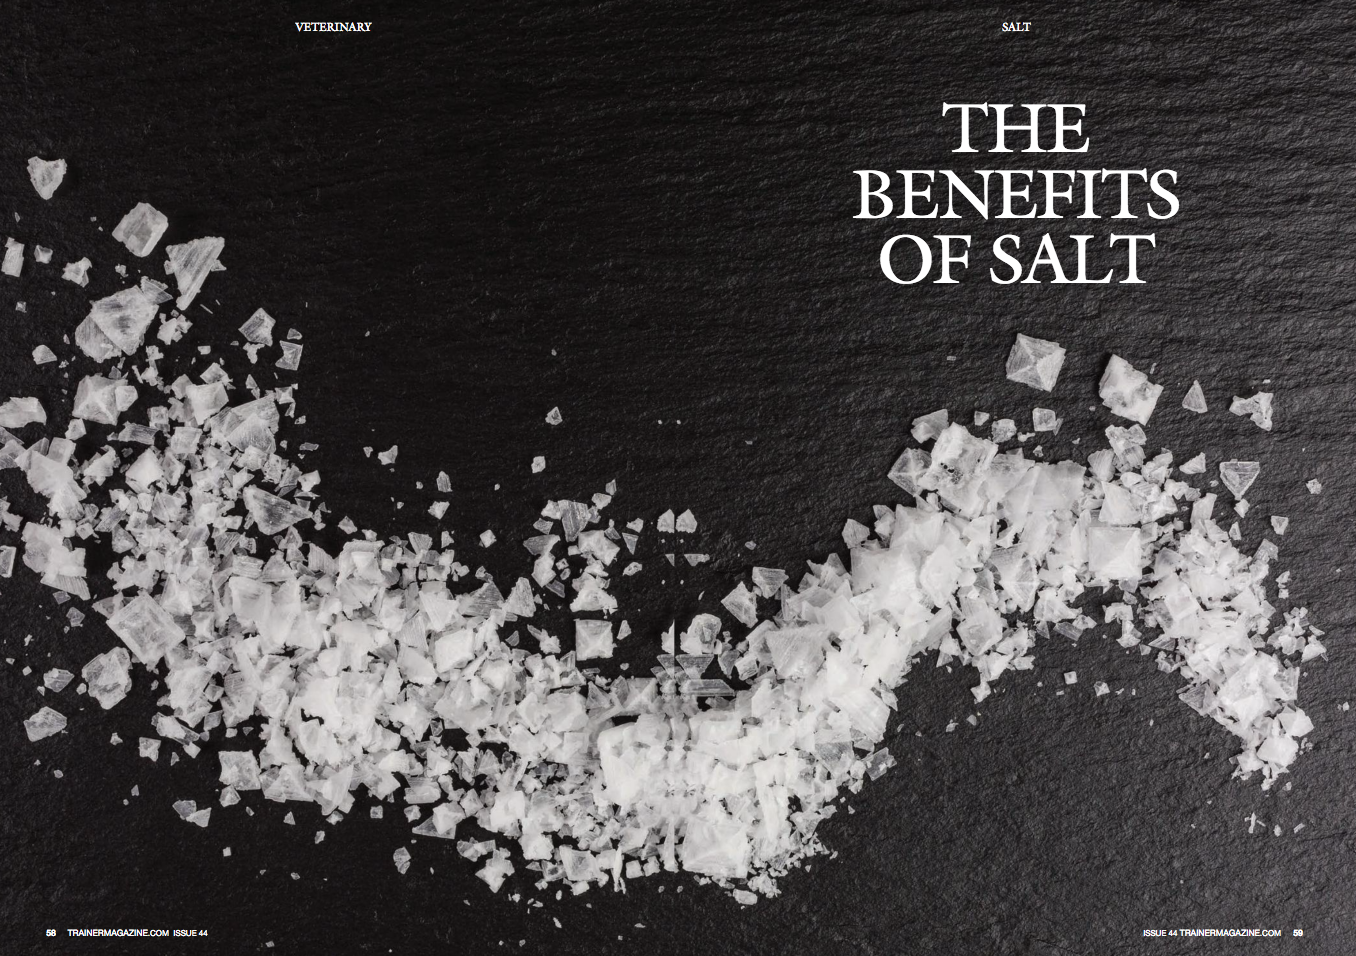 "The Vast and Varied Benefits of Salt for Racehorses    By: Stacey Oke, DVM, MSc       Anything and everything you need to know about the use of salt in horses       For being such a simple molecule—a mere ion of sodium joined with a single ion of chlorine to make sodium chloride (NaCl)—the crystalline chemical known as salt causes much confusion and prompts many questions. Why do horses need salt, and in what form? How often? Is the entire purpose of salt simply to help slake a horse's thirst and replenish sodium (Na), chloride (Cl), and other important electrolytes lost in sweat following exercise?        Based on years of research into feeding practices of domesticated horses, Kathleen Crandell, PhD, a nutritionist for Kentucky Equine Research located in Versailles, Kentucky, affirms that salt supplementation is indeed very important, but not always as straightforward as one might think.        ""Most forages destined for equine consumption have low levels of sodium and chloride. As such, equine nutritionists recommend supplementing all horses' diets with salt. The type, frequency, and amount will vary depending on the individual horse's work level and environmental conditions,"" advises Crandell.        The main focus of this article pertains to the importance of salt in equine diets and ways to provide appropriate amounts either using salt granules or blocks/licks, or electrolytes in the form of water-soluble powders or pastes. In addition, ""other"" uses of salt in Thoroughbreds, including medicinal uses such as salt therapy (salt rooms) and salted aqua trainers, are addressed.         Why Horses Need Salt       Unlike animals living in oceans that need to continually excrete excess salt, land mammals like horses have the complete opposite problem: they must obtain and maintain sufficient quantities of Na from their diets to support bodily processes.       Working in concert, the adrenal glands (located above the kidneys), liver, lungs, and kidneys all play key roles in conserving water, Na and Cl. Using several hormones and enzyme systems, referred to as the ""aldosterone-renin-angiotensin system,"" the kidneys receive signals to either excrete or reabsorb Na, Cl, and water in exchange for potassium (K) to maintain appropriate levels of all these electrolytes within the body.       Sodium is distributed amongst almost all organs and fluids. High levels of Na exist in skeletal tissues (about 50% of the body's total Na), blood, muscle (11%), skin (8.5%), and internal organs (2%). In addition, approximately 12% of the body's Na is found within ingesta located in the gastrointestinal tract. This serves as an effective reservoir for Na, especially in athletic horses.       ""In times of need, horses absorb sodium from the intestinal contents to replenish those lost in sweat,"" Crandell explains. ""Sodium is readily absorbed from the gastrointestinal tract, meaning that more than 90% of ingested Na is available for the body to use.""        Sodium is required for a wide array of body systems to function. Among the most important are the central nervous and muscular systems. Specifically, nerves require Na to stimulate skeletal muscles to contract.        Current Salt Intake Recommendations       While some horses don't seem particularly interested in their licks, other horses actively go out of their way to find salt, licking anything and everything they can get their tongues on to fill some apparent void. Sweat-covered tool handles or wooden blocks that historically held salt blocks frequently become prey to a horse's oral cavity, slowly licked or chewed to shreds in situations involving Na deprivation. Ultimately, every horse has unique tastes and flavor preferences, and their salt needs can vary dramatically.       According to the National Research Council's (NRC) Nutrient Requirements of Horses, sixth edition, horses consume anywhere from 0 to 62mg of salt/kg bodyweight a day when offered a free-choice salt block.        ""For an average 500kg horse, the NRC recommends offering 25g of NaCl daily,"" notes Crandell. ""Horses receiving commercial concentrate feeds will get a portion of that requirement from the feeds, as nearly every concentrate contains some salt.""       Classic ways of supplementing salt include:       Simple NaCl granules, such as table salt or ""loose salt,"" top dressed on feed (concentrates) or offered free-choice in a mineral feeder;    Free-choice salt licks/blocks;    Free-choice mineral licks/blocks (the colored mineral blocks), which in addition to Na and Cl, can include other minerals like iron and iodine (red block) or copper, zinc, and manganese (brown blocks). However, mineral levels in red and brown blocks are usually too low to meet a horse's total requirement for ""other"" minerals but normally quite sufficient for salt.        Specially formulated electrolyte supplements for horses, available as powders or pastes, can be added to the feed, dissolved in water, or dosed with a paste. The first ingredient of a good electrolyte will be salt (NaCl), so some owners/trainers prefer to either give electrolytes daily in place of salt or supplement only when the horse has been sweating to replace the lost electrolytes.        ""Electrolyte pastes are good for when a horse is in need of quick electrolyte replacement,"" Crandell advises.          Tailoring Salt Intake to the Task at hand       While the NRC recommends approximately 25g of NaCl per horse daily, the exact amount of salt offered depends on the individual horse, its level of athleticism and fitness, and environmental conditions.       ""Daily salt supplementation is particularly important for horses involved in heavy or prolonged exercise to replace the major electrolytes, Na and Cl, lost in the sweat,"" Crandell notes, ""Salt supplements can also be used to encourage drinking water for appropriate hydration.""        Horses adapted to exercise excrete less Na than untrained horses. In humid environments, however, and with prolonged exercise, more NaCl-laden sweat is produced, necessitating additional supplementation after exercise to replace these losses. For example, horses training in more northern climates suddenly moved to a humid, warmer environment will likely require additional NaCl following exercise.         According to the NRC, ""Because of limited data on specific requirements for sodium and the influence of activity, adaptation, and environment on animal needs, precise recommendations cannot be made.""       They did note, however, that intensely exercising horses in a hot climate likely meet their Na demands when trainers add 0.9% salt to the diet—equivalent to 90 grams per day for a 500kg horse consuming 10kg of feed per day. While this may seem like a lot of salt, consider that endurance horses may consume up to 180 grams of salt in the course of a 160 km race.       A more precise method of determining salt requirements described by the NRC involves measuring weight loss as an estimate of sweat loss. Sweat contains 2.8g NaCl per liter, prompting experts to suggest offering 3.1g of Na for each kilogram of bodyweight lost during exercise to replenish lost NaCl.        What If I Don't Supplement?       Feral horses clearly don't randomly happen upon salt blocks mysteriously appearing in their range like elaborate crop circles created by nocturnal aliens. So is Na supplementation really necessary?       ""It isn't until the 1800s that books devoted to feeding horses finally make mention of adding salt to horses' diets other than mixing it with wine and rubbing it on the gums to stimulate a horse to drink. It is possible that caretakers of domesticated horses did not realize the benefit of salt in the diet, or that up until the 1800s authors just did not think salt merited mentioning,"" Crandell explains.       That said, some authors of texts that Crandell has studied did make reference to feeding horses dirt or letting them get their daily dose of dirt when they are turned out.        ""I assume that horses not offered supplemental salt seek out salt deposits in soil, which is where it seems that feral horses obtain dietary salt. In the wild, however, ingesting salt from soil deposits would probably not occur on a daily basis,"" suggests Crandell.       John Stewart made several recommendations for the use of salt in his book Stable Economy: A Treatise on the Management of Horses (1860) regarding hay, including salted hay, which is hay mingled with salt at the time of stacking.        Stewart wrote, ""The principle motive for salting hay is to preserve it when the weather requires that it be stacked before it is sufficiently dry, horses are said to prefer it to any other."" He also wrote, ""Salt, I think, should not be forced on the horse. It may excite too much thirst. Given apart from the food, he may take all that is good for him.""       According to Crandell, by the 1900s, references to salt supplementation were widespread. In The Way of a Man with a Horse (1929). Lieutenant-Colonel Geoffrey Brook advised, ""All horses should have rock salt in their mangers, and 1 oz. in their boiled feeds or mashes. Salt promotes the digestion and aids in building up tissue.""       Horace Hayes in Stable Management and Exercise (1900) wrote, ""The bad reputation which wheat has in England as a producer of colic and laminitis, is chiefly due to ignorance of the proper way to prepare it for a horse to eat. A couple of pounds of boiled wheat, in which a little salt has been mixed, form an agreeable repast for a horse at night when soft food is required."" Hayes' advice on making a proper bran mash was to add ""…about 3 lbs. of bran with an ounce of salt, and pour in as much boiling water as the bran will take up.""       To help horses drink, Indian author Rangin wrote, ""After returning from furlough and before showing a horse at darbār a sawar gives the following: dry ginger, black mustard seed, salt, ajwāin or ajova seeds. One ounce of each is powdered, mixed in ātā and given at bed-time. The horse will drink deeply in the morning.""       A Dab too Much, a Drop too Little?       Wondering when to say ""Whoa, whoa!"" like a parent watching their child pour milk on their morning cereal? Generally speaking, offering a bit too much salt isn't problematic.       ""Being water soluble, excess salt generally gets excreted by the body, largely without harm or foul as long as there is water to drink. In terms of palatability, horses generally don't tolerate NaCl in a very high concentration in their feed, usually no more than 1.5% before they start refusing it. That would be equivalent to 15g of salt in every kilogram of feed,"" shares Crandell.  ""That is why feed manufacturers usually recommend offering salt free-choice alongside a concentrate.""       That said, reports exist describing either the development or exacerbation of gastric ulcers with repeated administration of electrolyte solutions.        ""Because gastric ulcers pose health and performance problems for athletic horses, including Thoroughbred racehorses, appropriate supplementation and attention to gastric protection should be embraced,"" advises Crandell. ""Similarly, endurance horses are particularly at risk with the high intakes of electrolytes they receive, especially during a competition.""       Researchers from Germany recently reported that in addition to gastric ulceration, high levels of NaCl (100 g) to moderately exercising horses daily for two weeks results in a mild metabolic acidosis. This means that the pH (acidity) of the blood decreases, becoming more acidic, which negatively impacts the excretion of other minerals and electrolytes, including calcium. The full text of this article is available for free at https://www.ncbi.nlm.nih.gov/pmc/articles/PMC5207637/.       Rarely, psychogenic salt consumption occurs. In such cases, horses voluntarily ingest excessive Na and, not surprisingly, drink and urinate more frequently. If you are concerned your horse is drinking and urinating more than normal (e.g., compared to previous levels or herd mates), it is important to consult with your veterinarian. They will help rule out other causes of excessive thirst and urination, including diabetes (mellitus or insipidus), Cushing's disease, and Addison's disease.         ""Classic signs of sodium deficiency include dehydration, incoordination of skeletal muscles, including chewing abnormalities, and an unsteady gait,"" shares Crandell.        In addition, the concomitant decrease in feed and water intake also causes weight loss.       Other Uses for the Salts in Horses       Wounds/Abscesses       Salt is widely touted as having natural anti-inflammatory and antibacterial properties that help fight infection. For example, salt dissolved in water can be packed into or placed on wounds and abscesses to help fight infection.       The Merck Veterinary Manual describes using Epsom salt to help manage sole punctures or abscesses. In this case, however, it's important to note that Epsom salt isn't actually NaCl or any type of salt but rather a mineral compound containing magnesium sulfate.       Recent research in human medicine tends to support the use of salt for various types of wounds, especially considering the surge in human patients preferring to use natural and alternative therapies first rather than jumping directly to pharmaceutical drugs (an approach increasingly mirrored throughout the equine industry). For example, a 2017 study published in the journal Wounds found that topic administration of a sea salt-based spray to human patients with diabetic foot ulcers was beneficial.        Medications       Several pharmaceutical drugs used in horses come as salts, which help stabilize the medication. Ceftiofur sodium (Naxcel) and ceftiofur crystalline free acid (Excede) can be used in horses. Both medications include the same basic drug used to treat the same infections but are dosed much differently because of their unique preparations (salt versus crystalline free acid). Excede, for example, treats respiratory tract infections in just two doses, whereas Naxcel is licenced for the same respiratory diseases but is administered daily for up to consecutive 10 days.        Another interesting example of how different formulations impact dosing involves glucosamine, commonly found in various joint supplements. Some supplements contain glucosamine hydrochloride (HCl) and others contain glucosamine sulfate. Both products dissolve in fluid in the gastrointestinal tract to generate ""glucosamine free base"" (GFB) that is available for absorption. However, the HCl form produces more GFB than the sulfate form. This means that if two supplements contain 1000mg of glucosamine but one has 1000mg of glucosamine HCl and the other has 1000mg glucosamine sulfate, 830g of GFB from the HCl product is available for absorption, whereas only 600g of GFB is available for absorption from the sulfate product. This doesn't mean that a product containing the sulfate form is inferior; it simply shows that not all salts are equal.       Salt therapy (Salt Rooms)       Salt rooms are exactly what they sound like: rooms or modified stalls/boxes that have salt either pumped into the air or caked onto the walls and floors. In either design, aerosolized salt directly contacts the horse's skin while simultaneously being inhaled. This therapy mimics salt caves that were once a haven for people with various respiratory afflictions, including asthma and chronic obstructive pulmonary disease (COPD), equivalent to heaves in horses.       Using salt therapy as a natural, non-invasive method of managing skin and respiratory issues is not new, but interest in, and availability of, salt therapy has only recently surged in the equine industry. Now, several therapy facilities offer services around the world, and some horse-rich regions even have mobile therapy units relatively readily available.        According to companies offering salt therapy, the benefits for Thoroughbreds are:    • Suffering from respiratory conditions, including lower airway disease (e.g., inflammatory airway disease that is common in young, racing Thoroughbreds);    • With skin conditions, such as rashes, boils, dermatitis, mud fever, and ringworm;    • By facilitating recovery following training or racing (presumably by replacing lost electrolytes during exercise); and,    • Through performance-enhancing mechanisms when used prior to competing.       Like many alternative and complementary therapies used in horses, the million dollar questions are: does this work and if so, how?        To date, no studies on salt therapy in horses have been published. Even in the human literature, very few controlled studies exist. Recently, a team of scientists reviewed the available literature on salt therapy for patients with COPD (one of the most common indications of salt therapy). In their study, published in the February 2014 edition of the International Journal of Chronic Obstructive Pulmonary Disease the authors wrote, ""From this review, recommendations for inclusion of salt therapy as a therapy for COPD cannot be made at this point and there is a need for high quality studies to determine the effectiveness of this therapy.""       In response to public-generated interest, Dr. Norman Edelman, the senior scientific advisor for the American Lung Association, contributed to a statement on the use of salt therapy. Based on his musings, there does seem to be scientific validity to the therapy. Edelman wrote, ""When fine salt particles are inhaled, they will fall on the airway linings and draw water into the airway, thinning the mucous…. Also, these environments are allergen-free and thus good for people with allergies affecting their lungs.""       He also pointed out, however, that there are no evidence-based findings to create guidelines for patients and clinicians about treatments such as salt therapy, and he questioned how well maintained the rooms are. The concern was that bacteria could grow in unmaintained rooms, potentially exacerbating skin and respiratory conditions.        In summary, the American Lung Association's final verdict was that salt therapy should be discussed with a medical professional—in our case, a veterinarian.       Aqua Trainers       Much like salt rooms that create an ocean beachfront feel, aqua trainers can produce a similar environment. In addition to the standard benefits of a water treadmill (e.g., conditioning, rehabilitation, etc.), the salt can aerosolize, potentially benefiting the respiratory tract and skin.        Concluding Remarks: Use Salt with a Grain of Salt     Regardless of whether you are seeking salt for daily supplementation, electrolyte replacement, wound management, respiratory health, or other reasons, there clearly remains a great deal to learn. As always, consult with your veterinarian prior to any change in diet or supplement strategy, and choose products manufactured by reputable companies. Quality supplements are more likely to contain the type and amount of ingredient listed on the label and be free from contaminations, including illegal substances that could hypothetically generate a positive drug test (believe me, it's happened!). Many respiratory and skin conditions require veterinary intervention; therefore, salt therapy and aqua trainers should only be explored after your horse has been examined by a qualified individual."